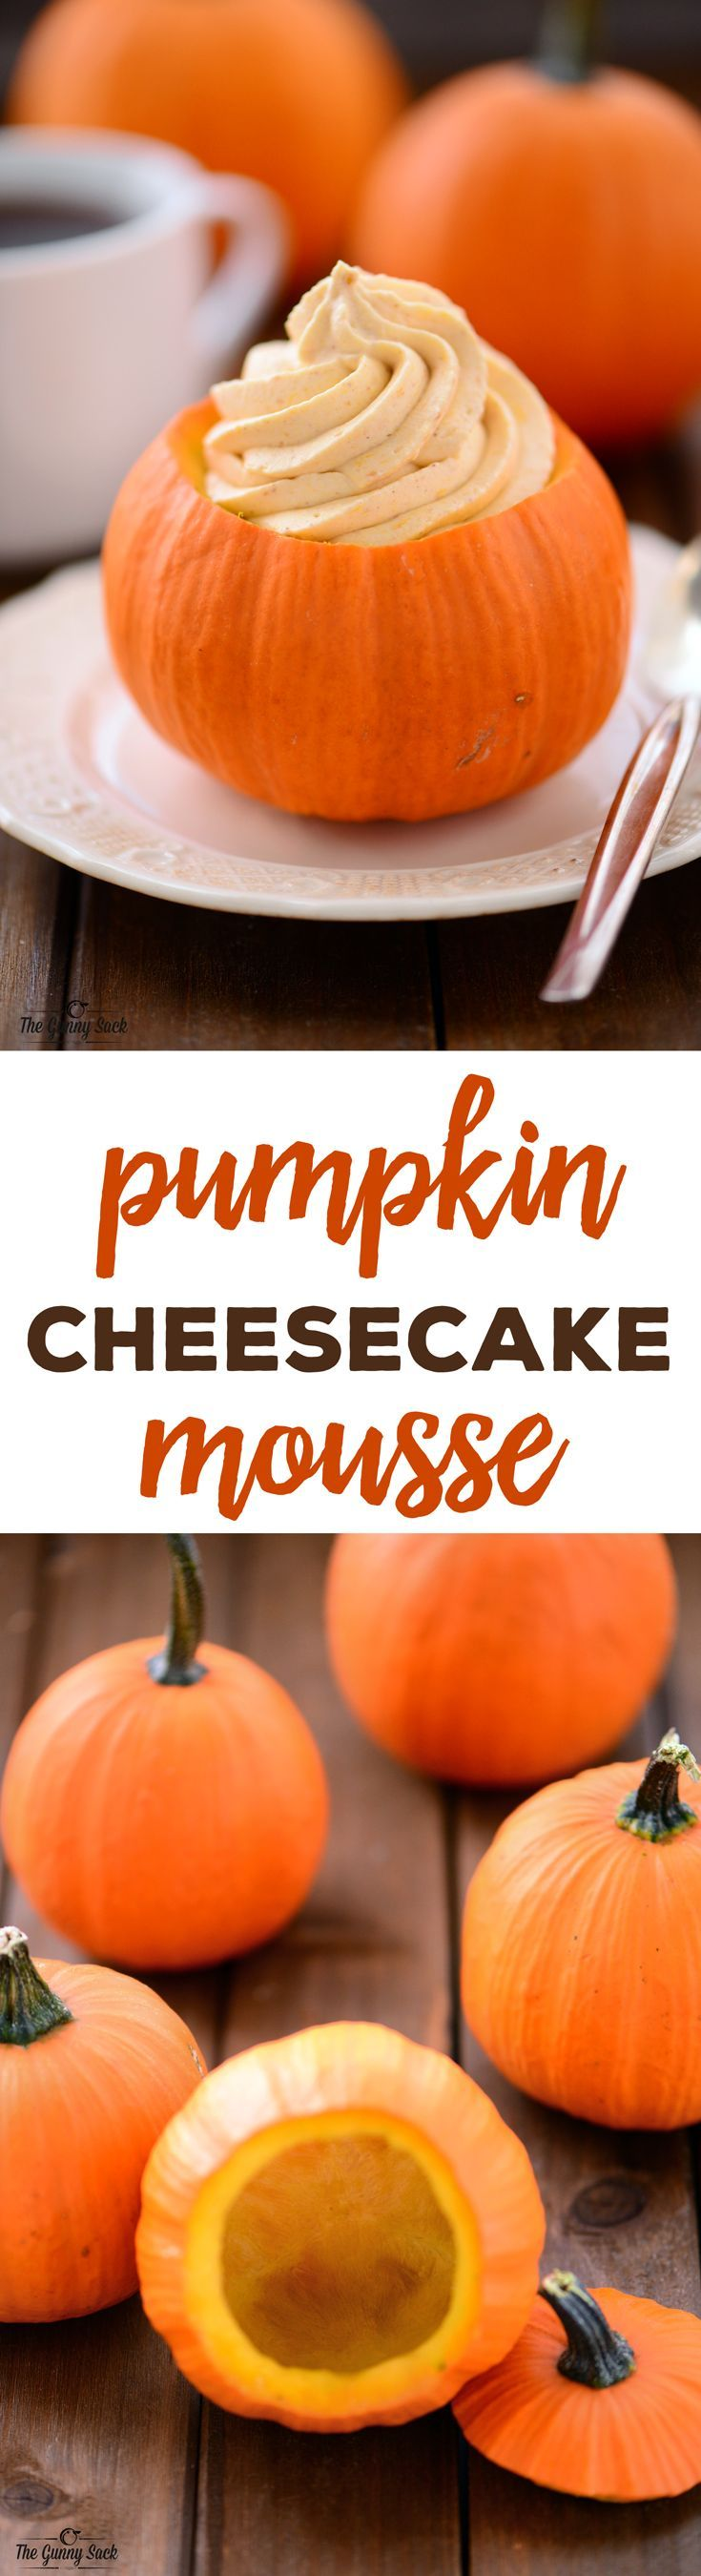 This Pumpkin Cheesecake Mousse recipe is a delicious, creamy dessert that is so fun to serve from mini pumpkins! It's perfect for Thanksgiving dinner.